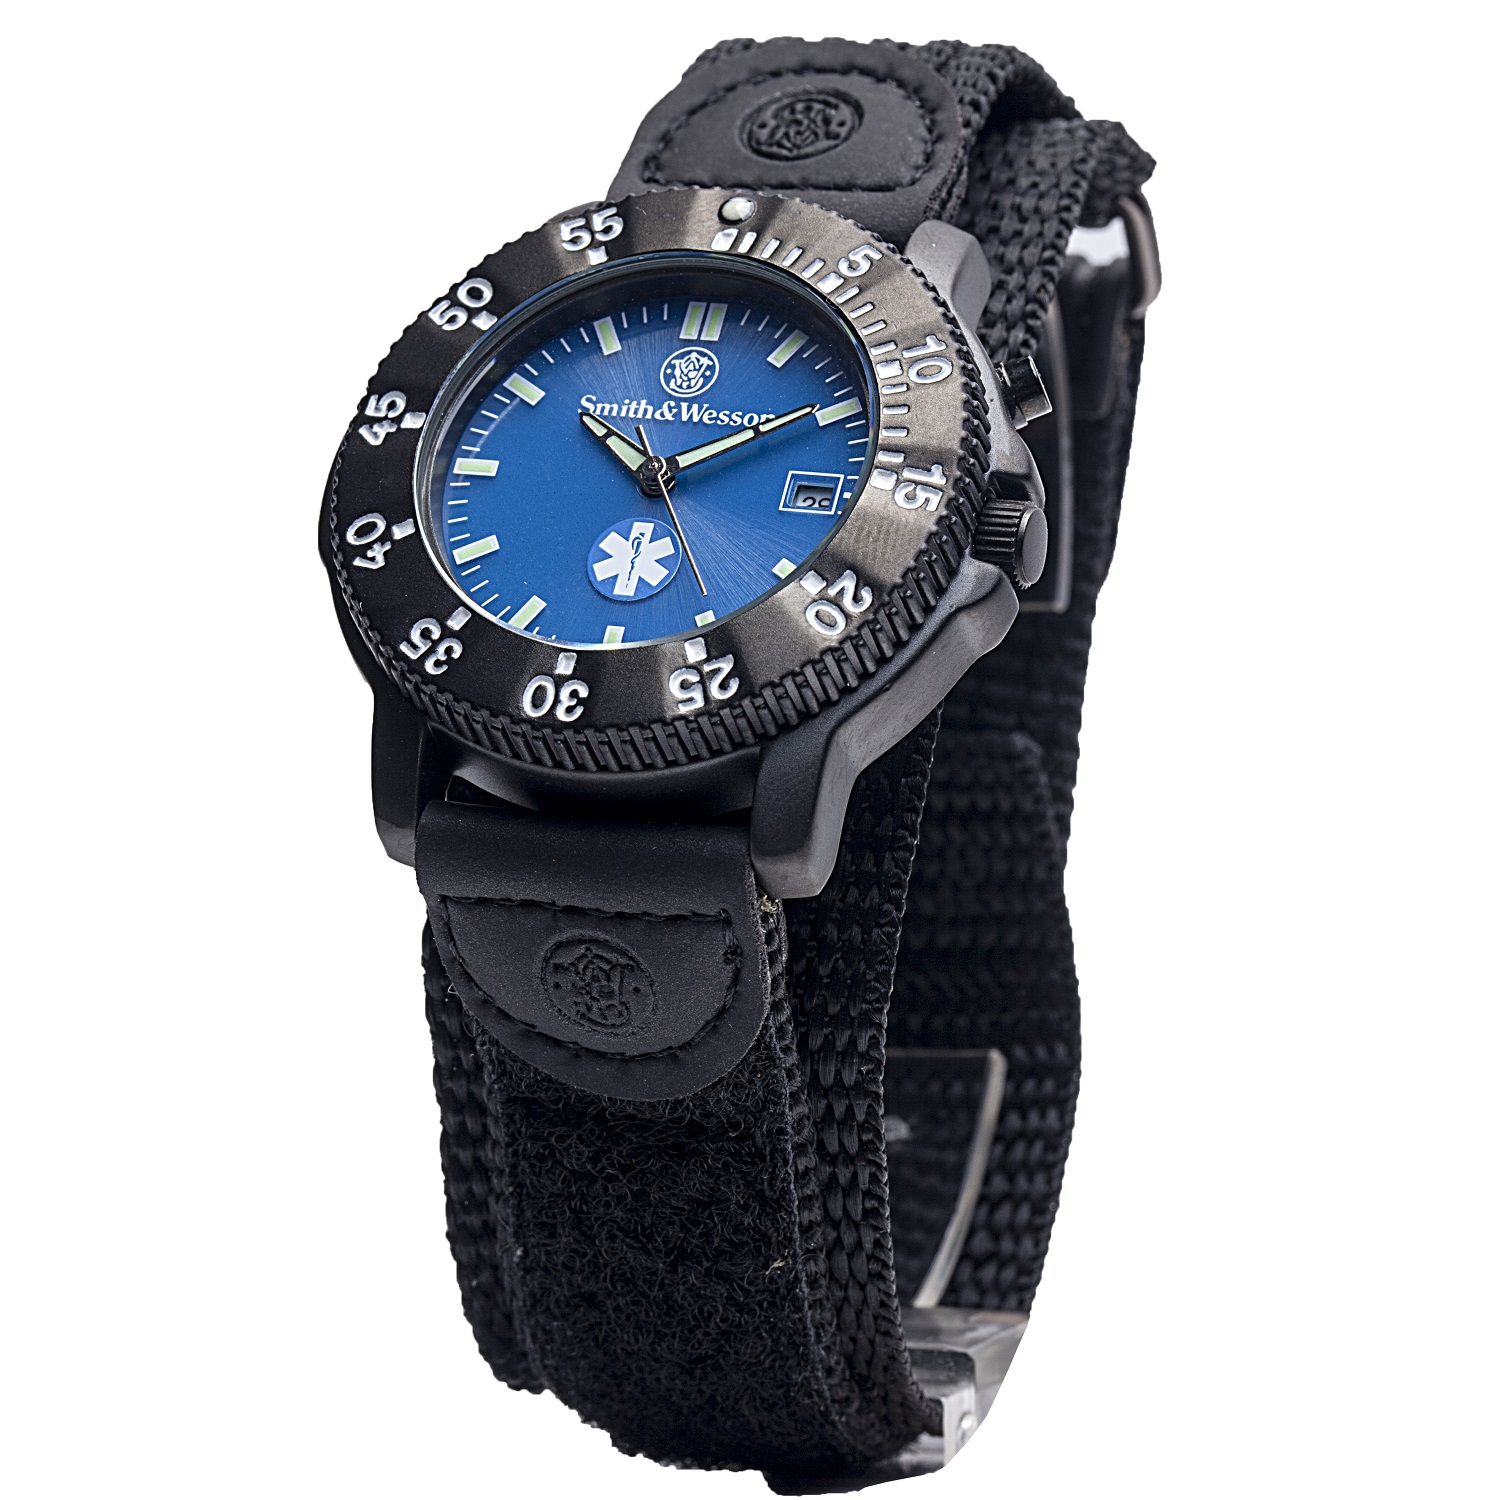 Smith & Wesson EMT Watch with Black Nylon Strap Blue Face